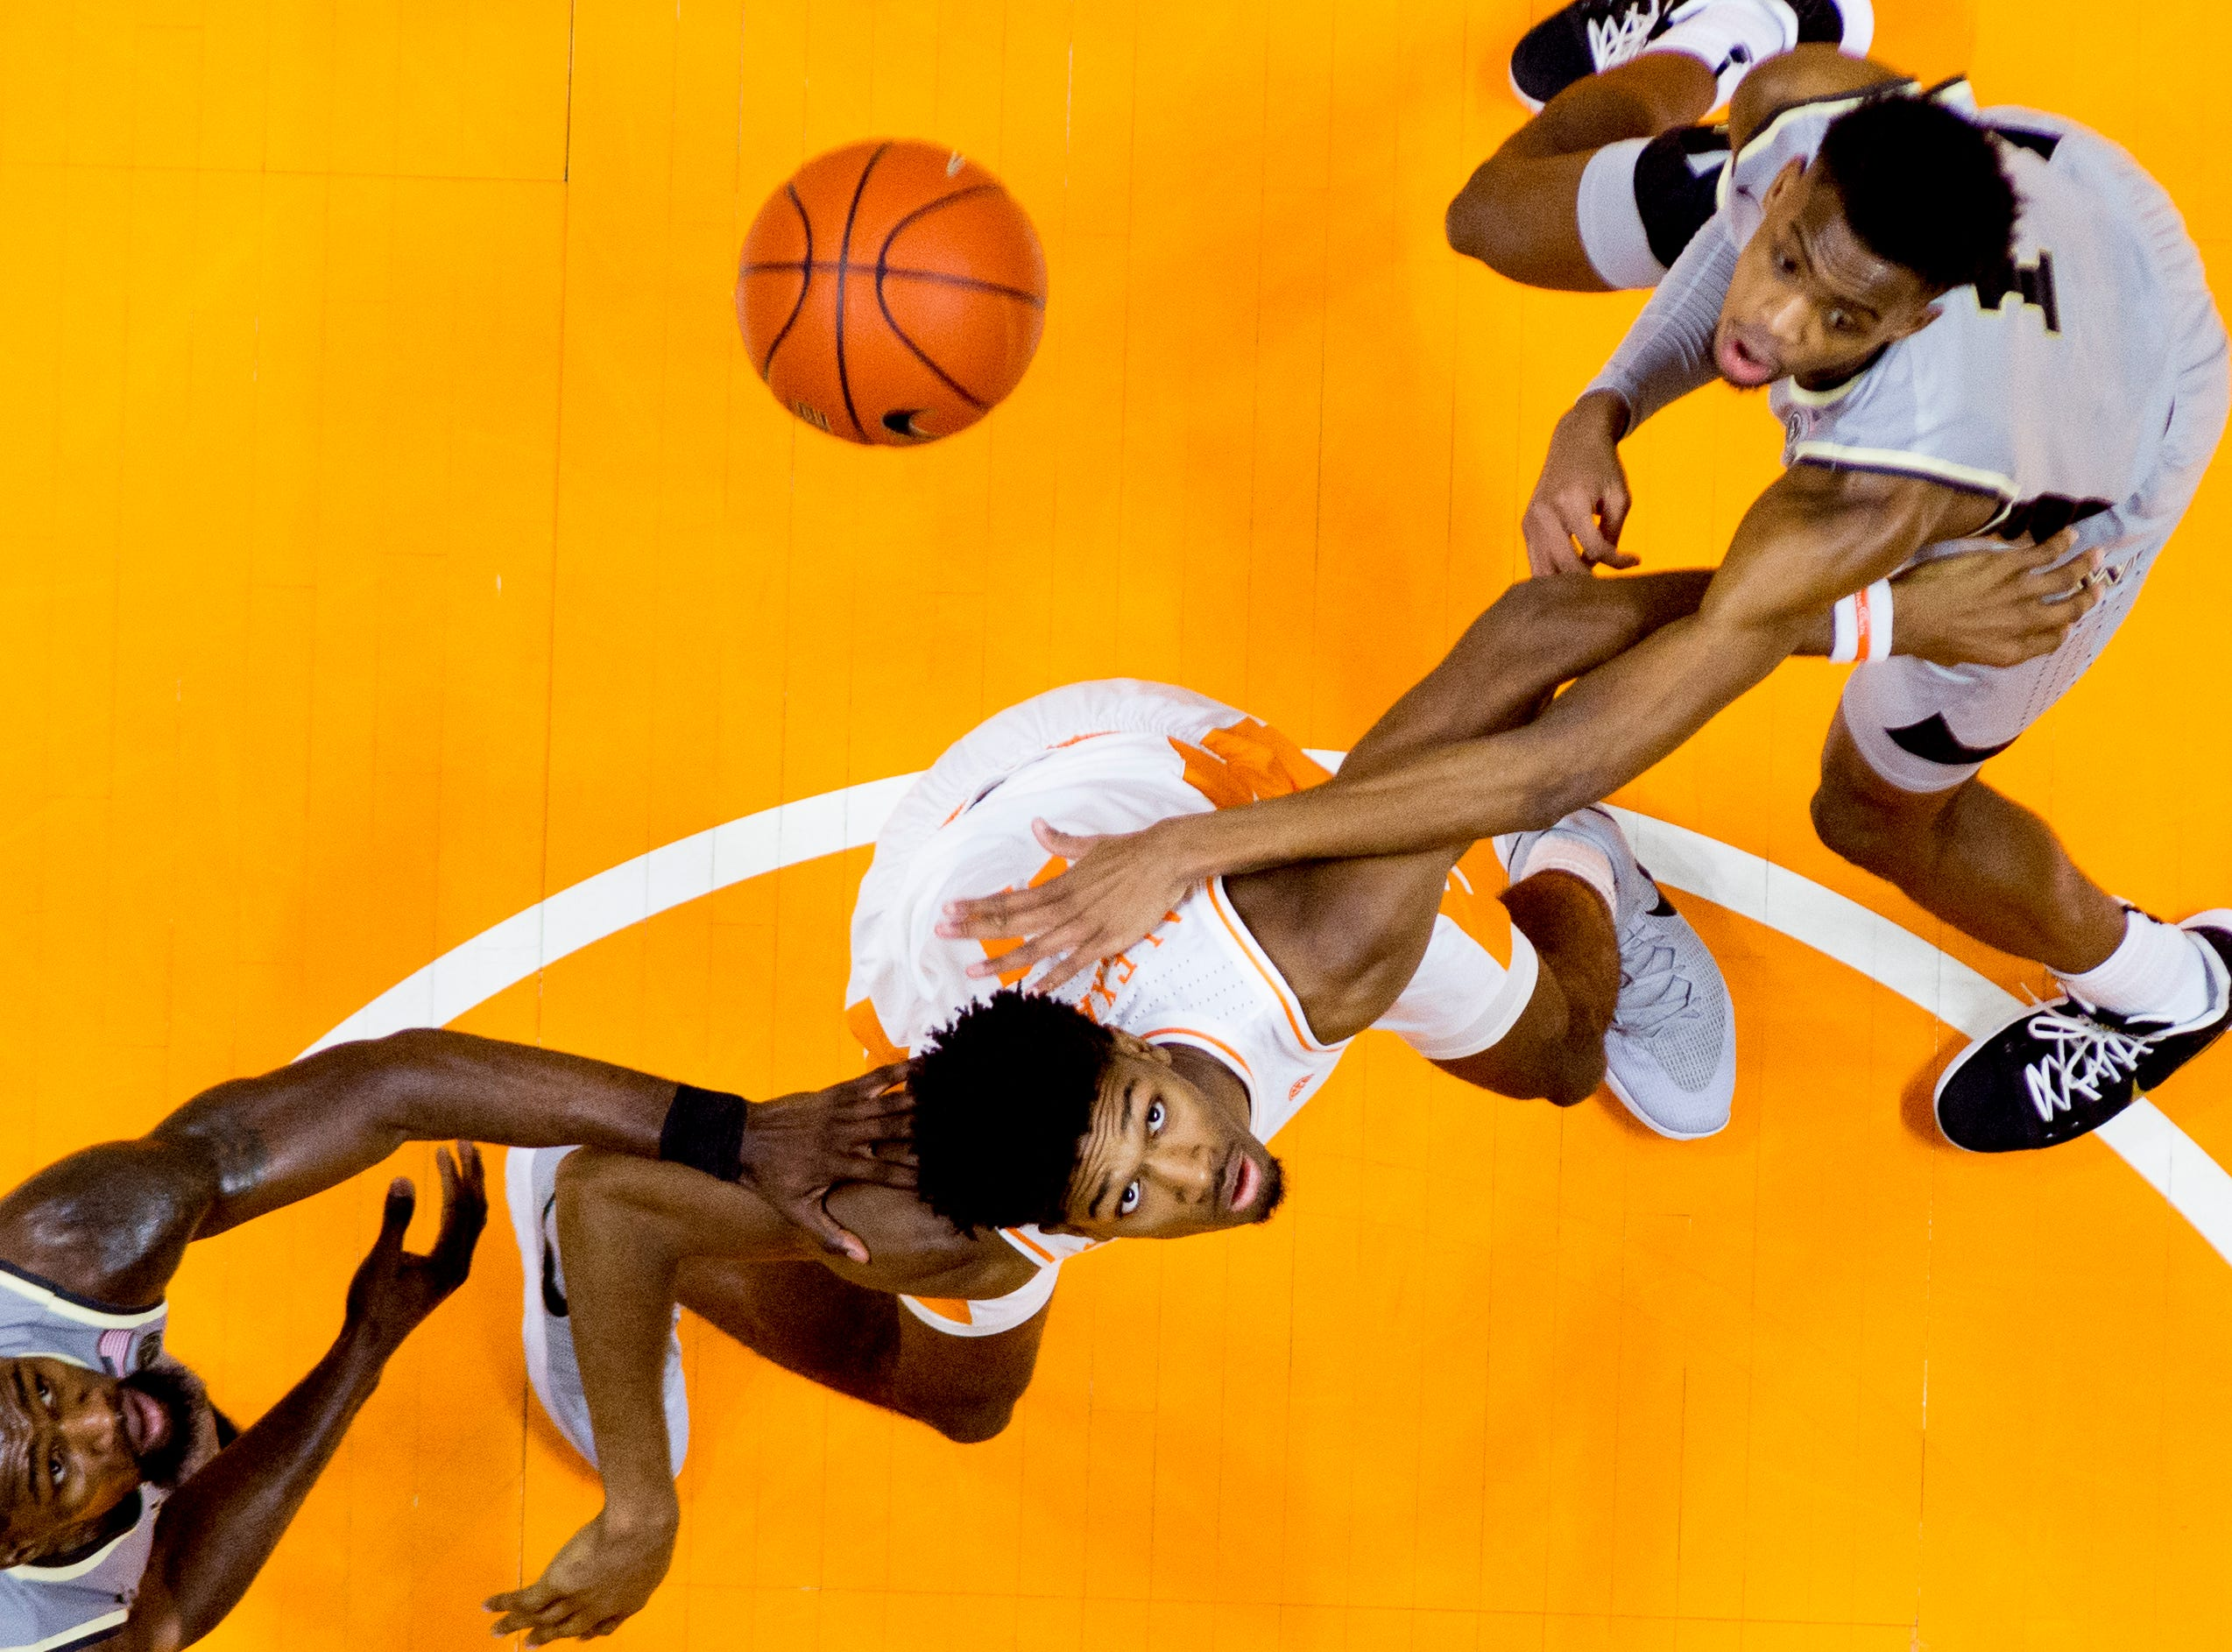 Tennessee forward Kyle Alexander (11) eyes a loose ball during a game between Tennessee and Wake Forest at Thompson-Boling Arena in Knoxville, Tennessee on Saturday, December 22, 2018.